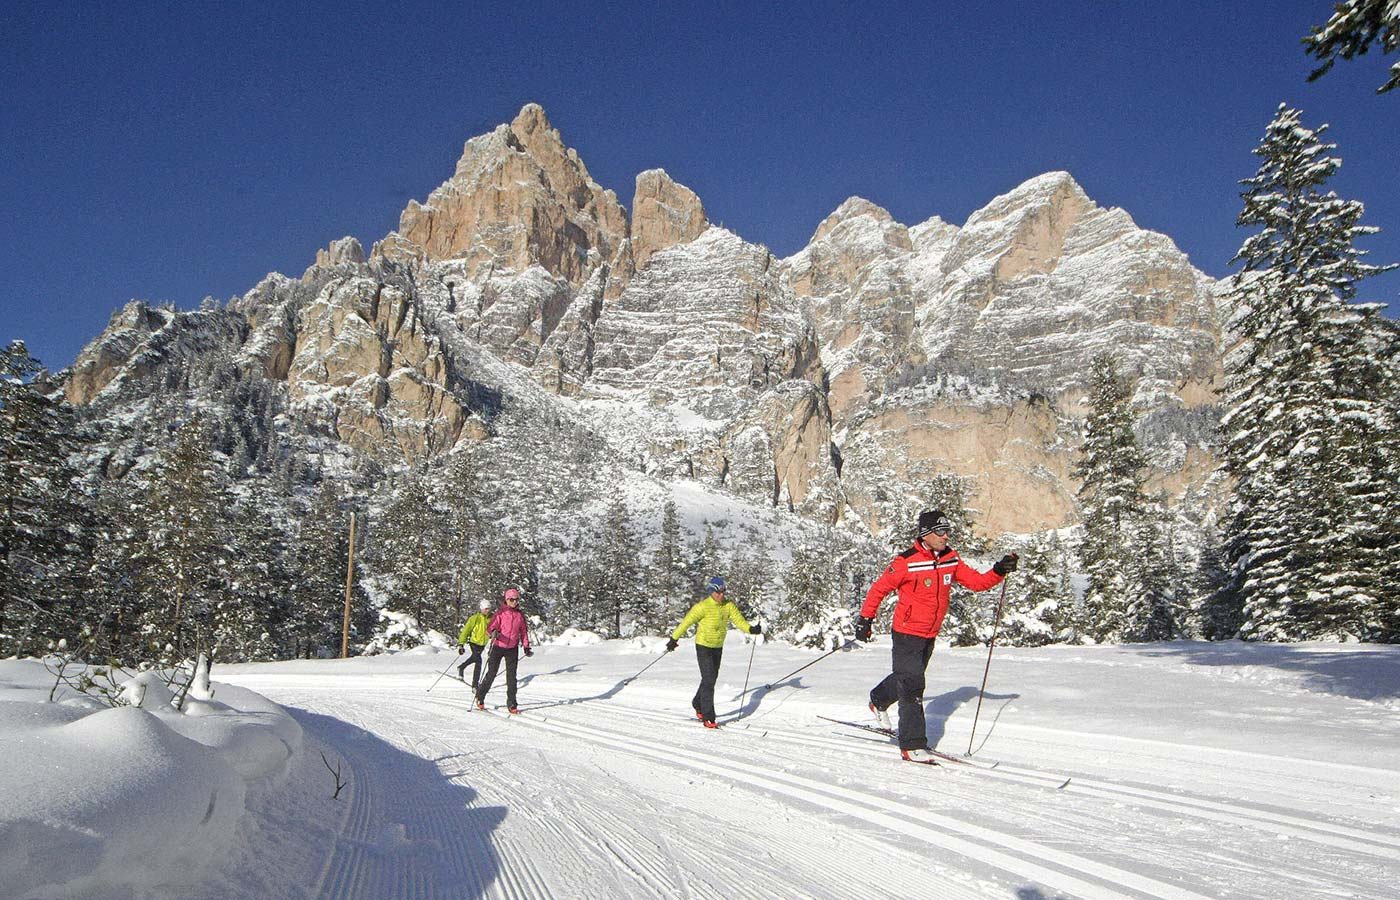 Cross-country skiing with a view on the Dolomites